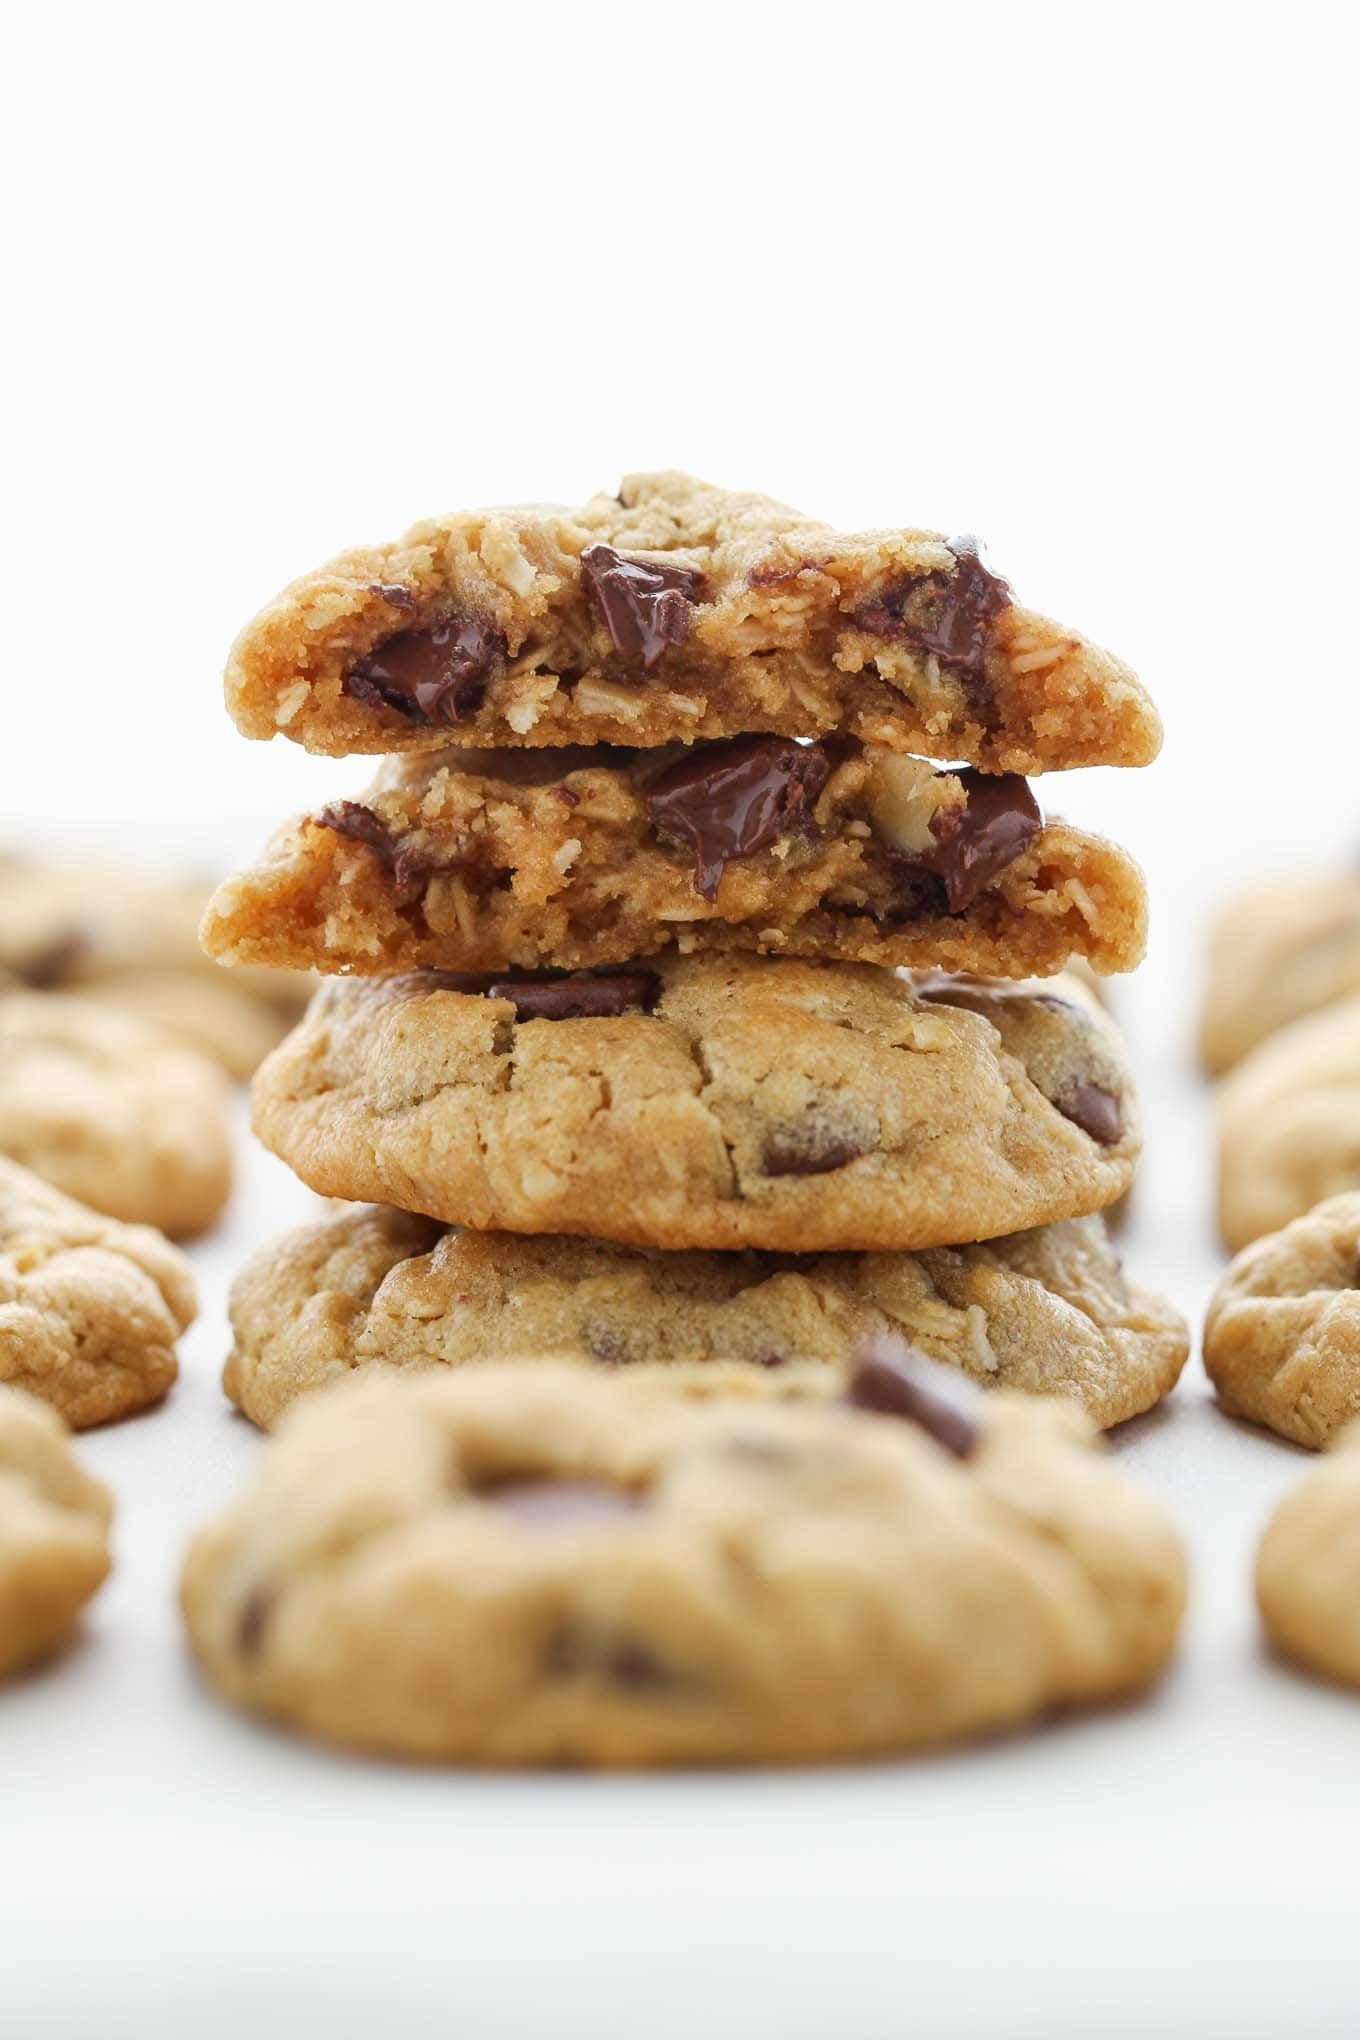 A stack of peanut butter oatmeal chocolate chip cookies with more cookies surrounding them.